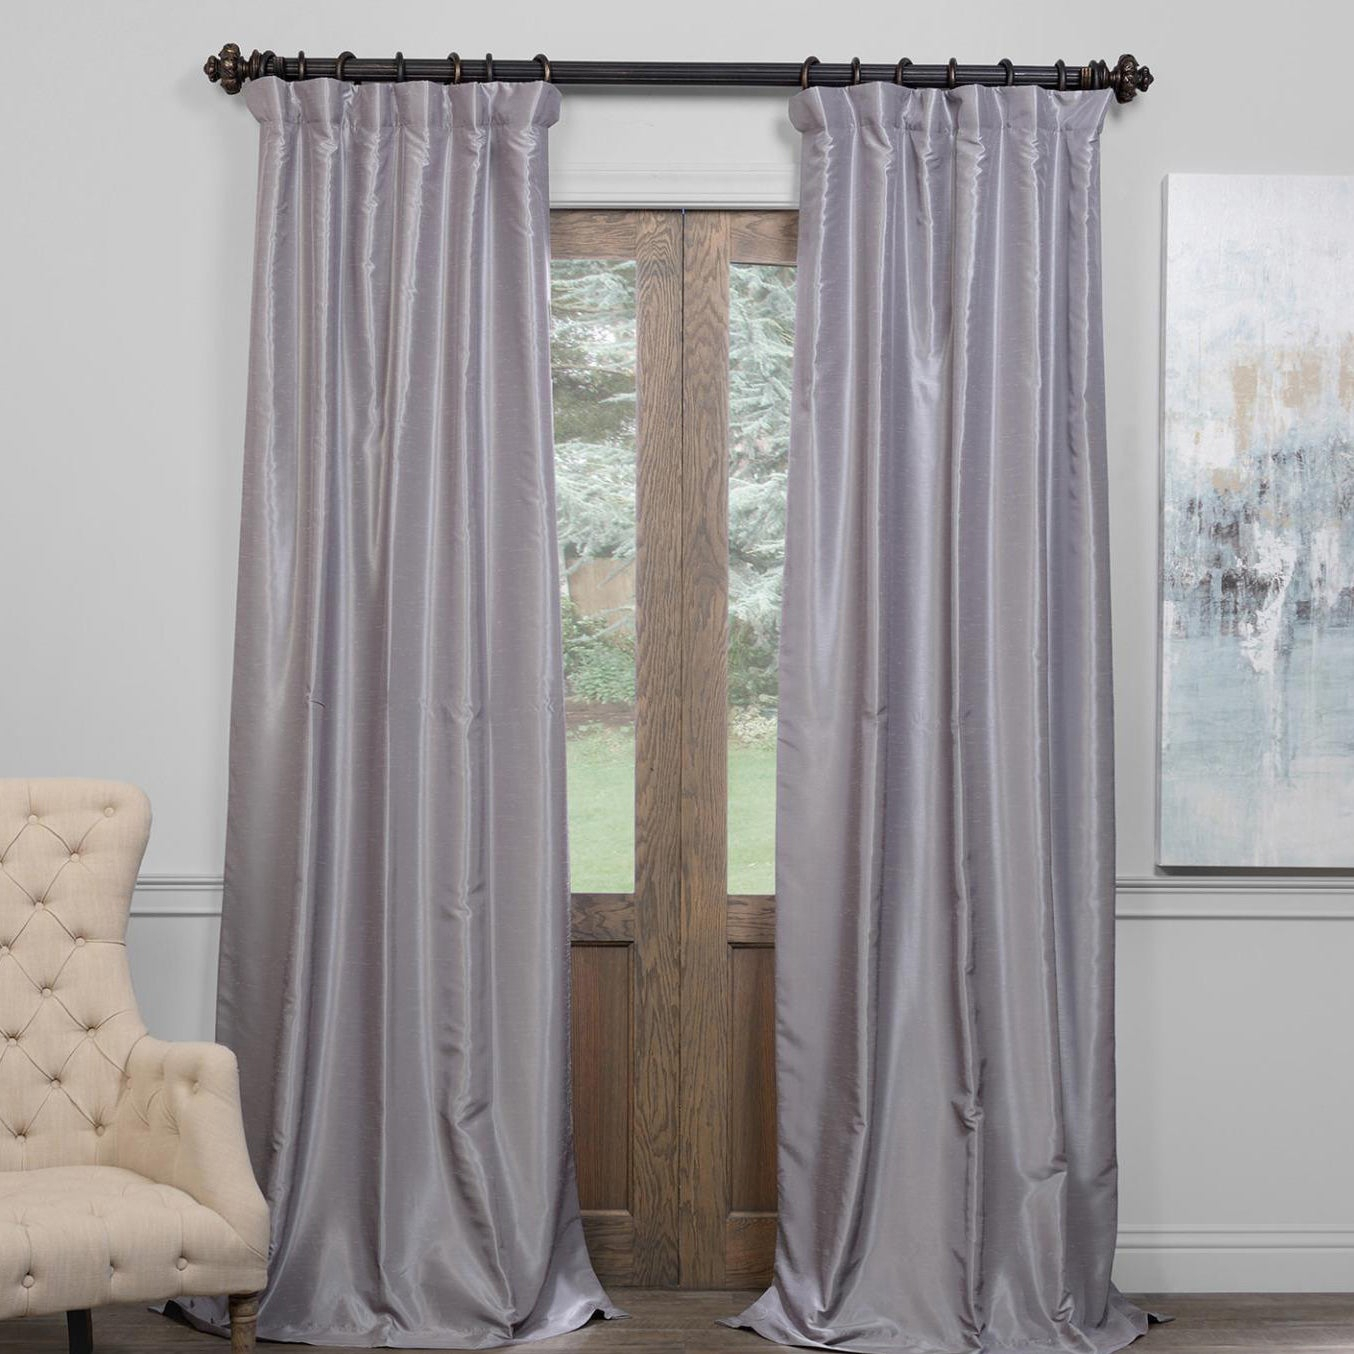 Exclusive Fabrics True Blackout Vintage Textured Faux Dupioni Silk Curtain Panel In Ruby (as Is Item)   Overstock Shopping – The Best Deals On As Within Vintage Textured Faux Dupioni Silk Curtain Panels (View 16 of 30)